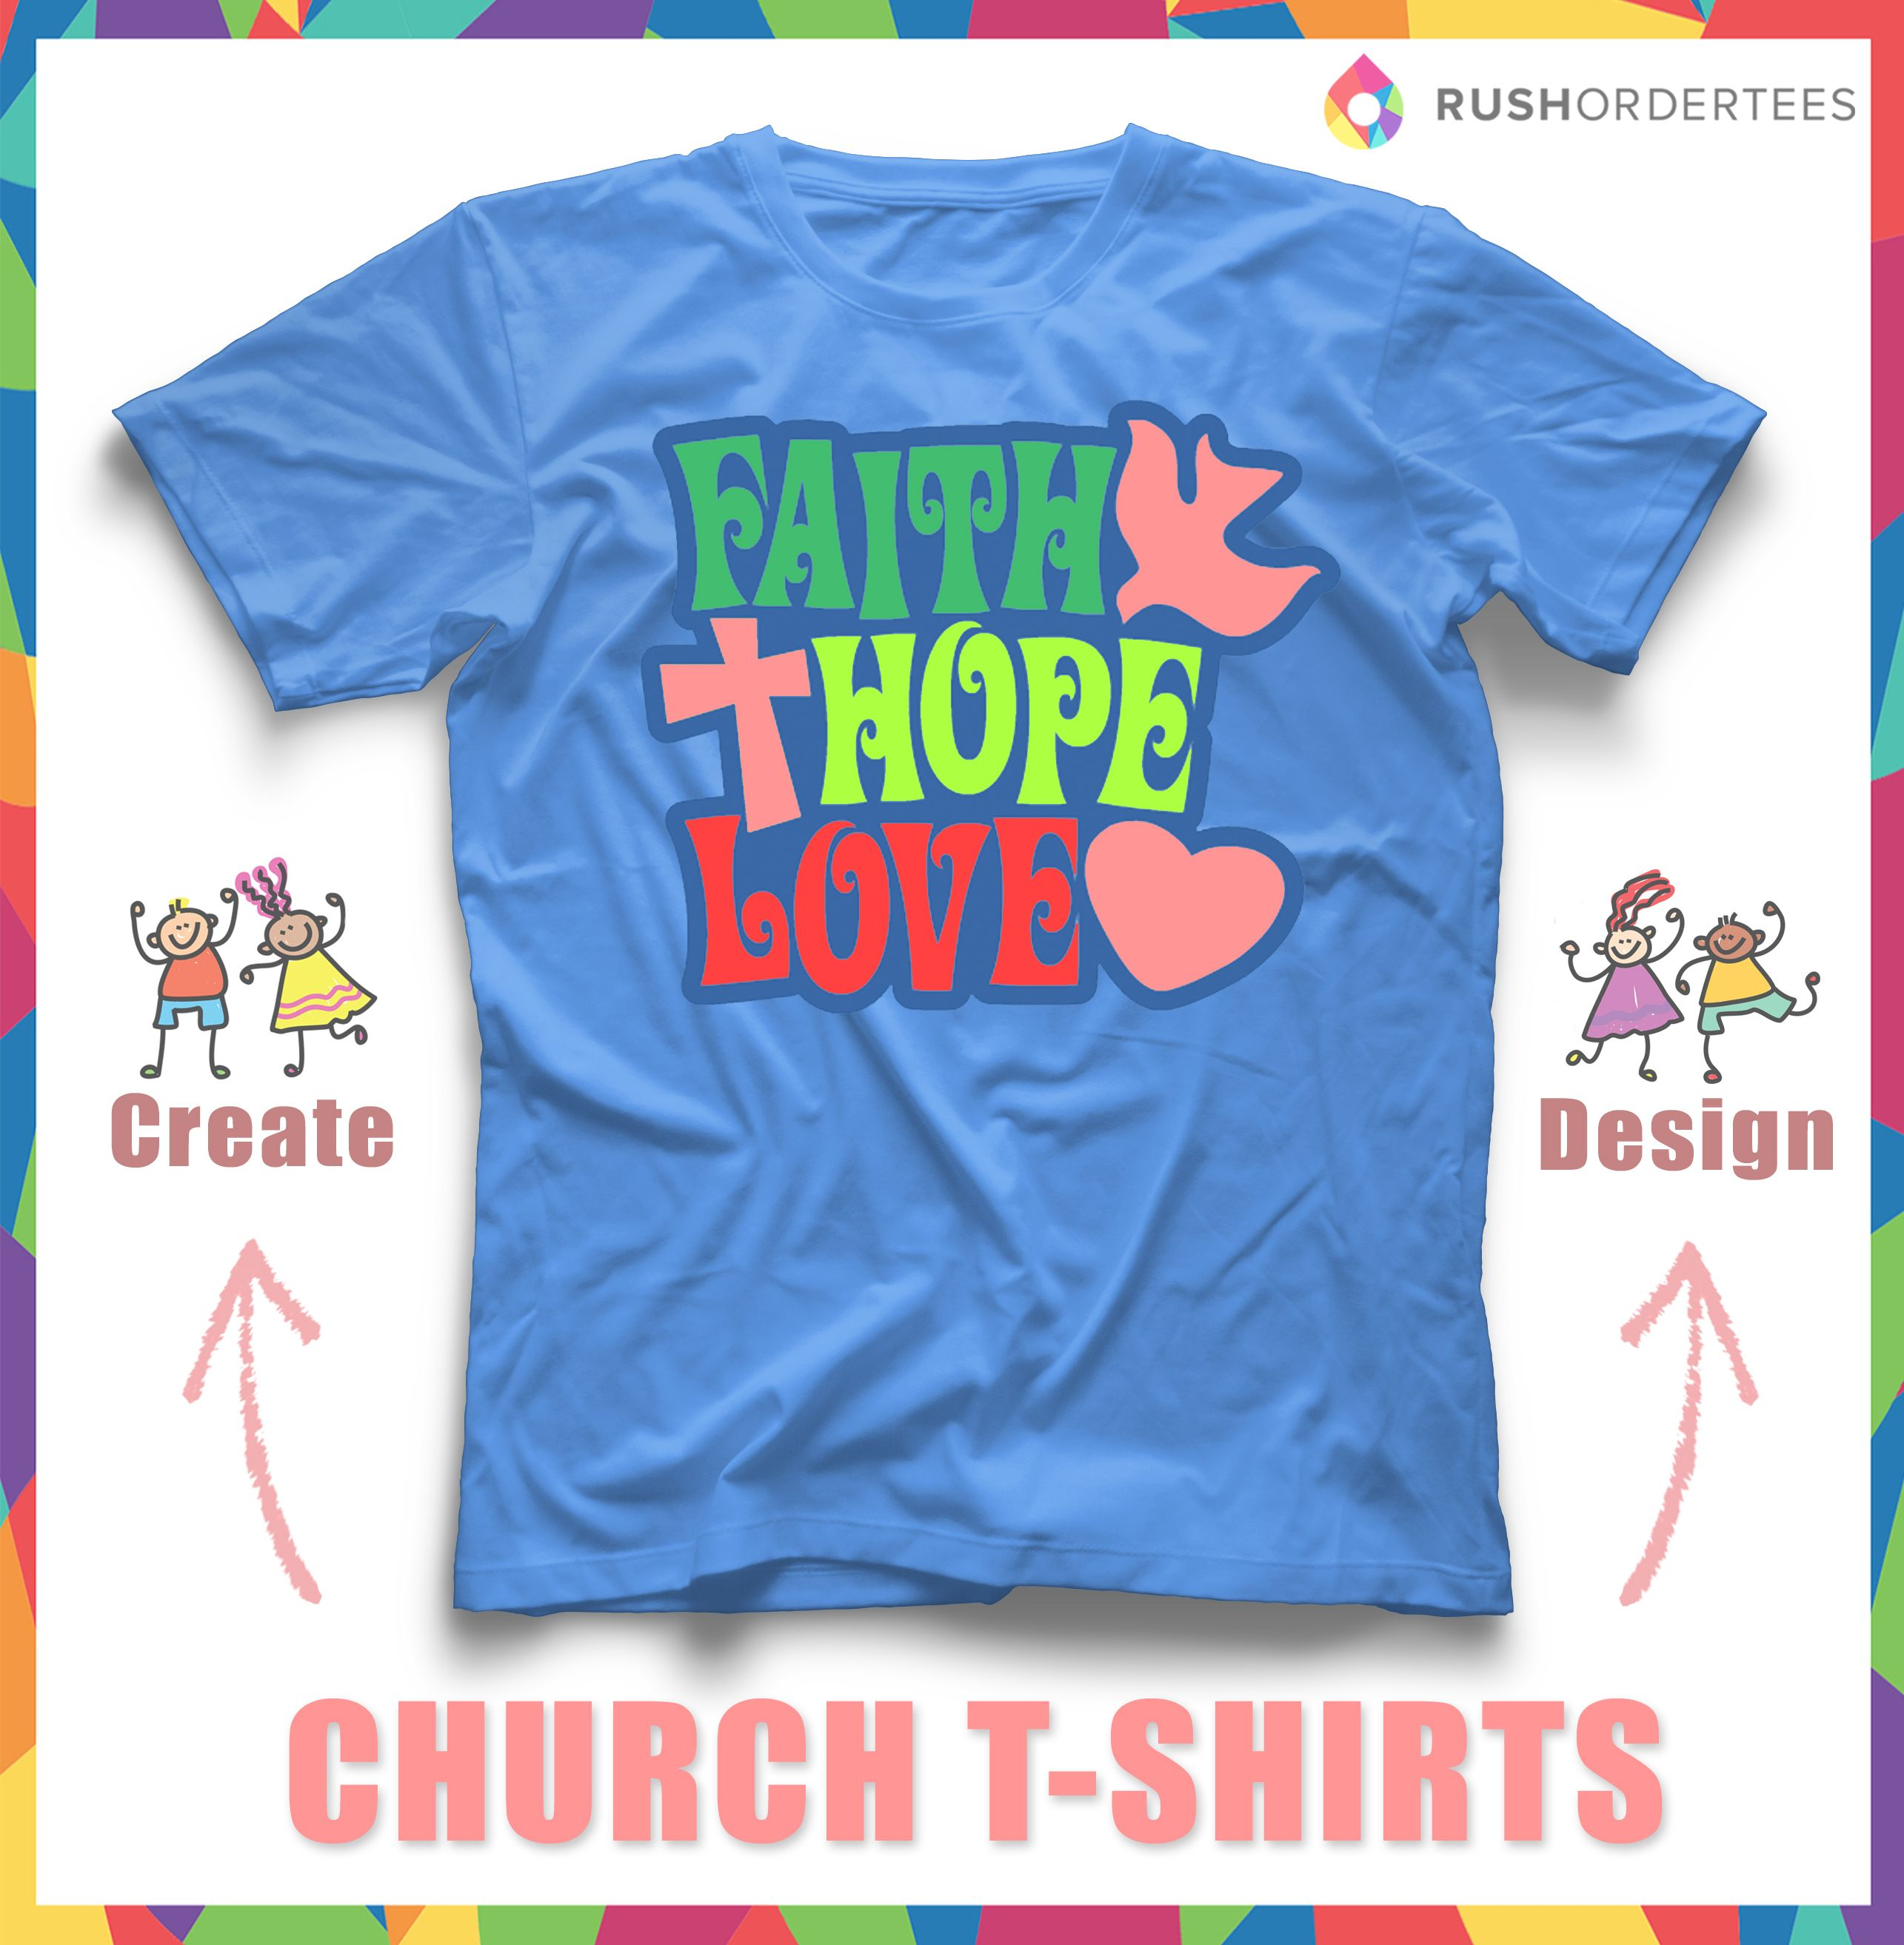 186489c1 Church design idea for your custom t-shirts. You can find more cool church  design ideas at www.RushOrderTees.com #churchshirts